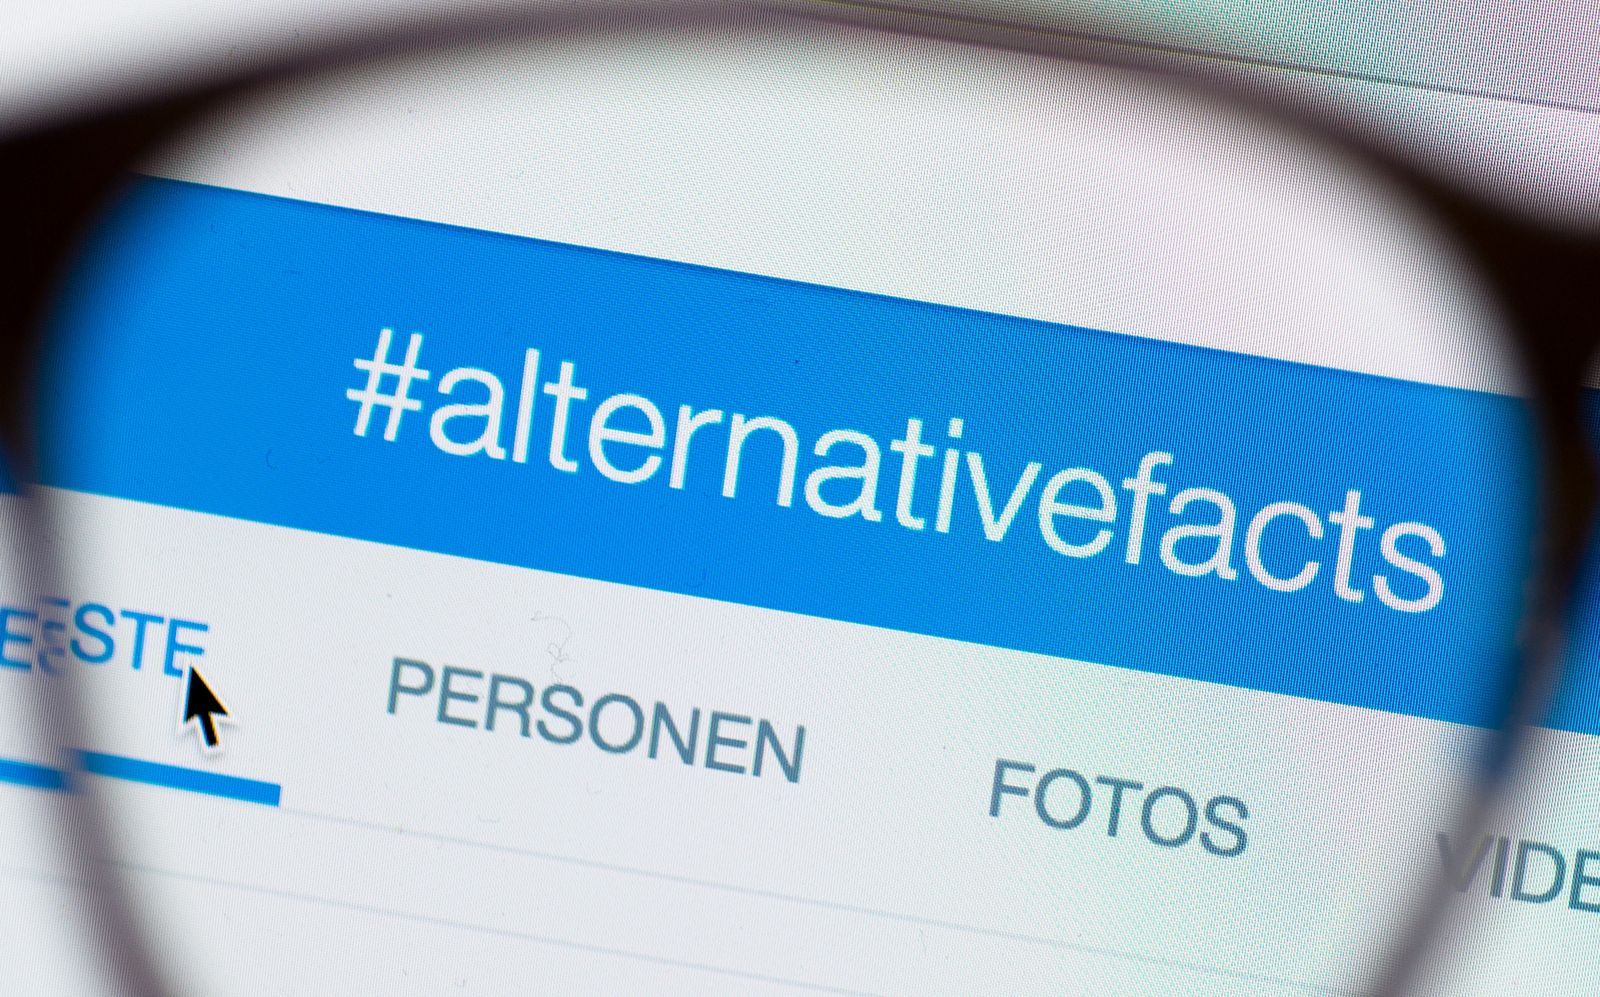 Hashtag #alternativefacts